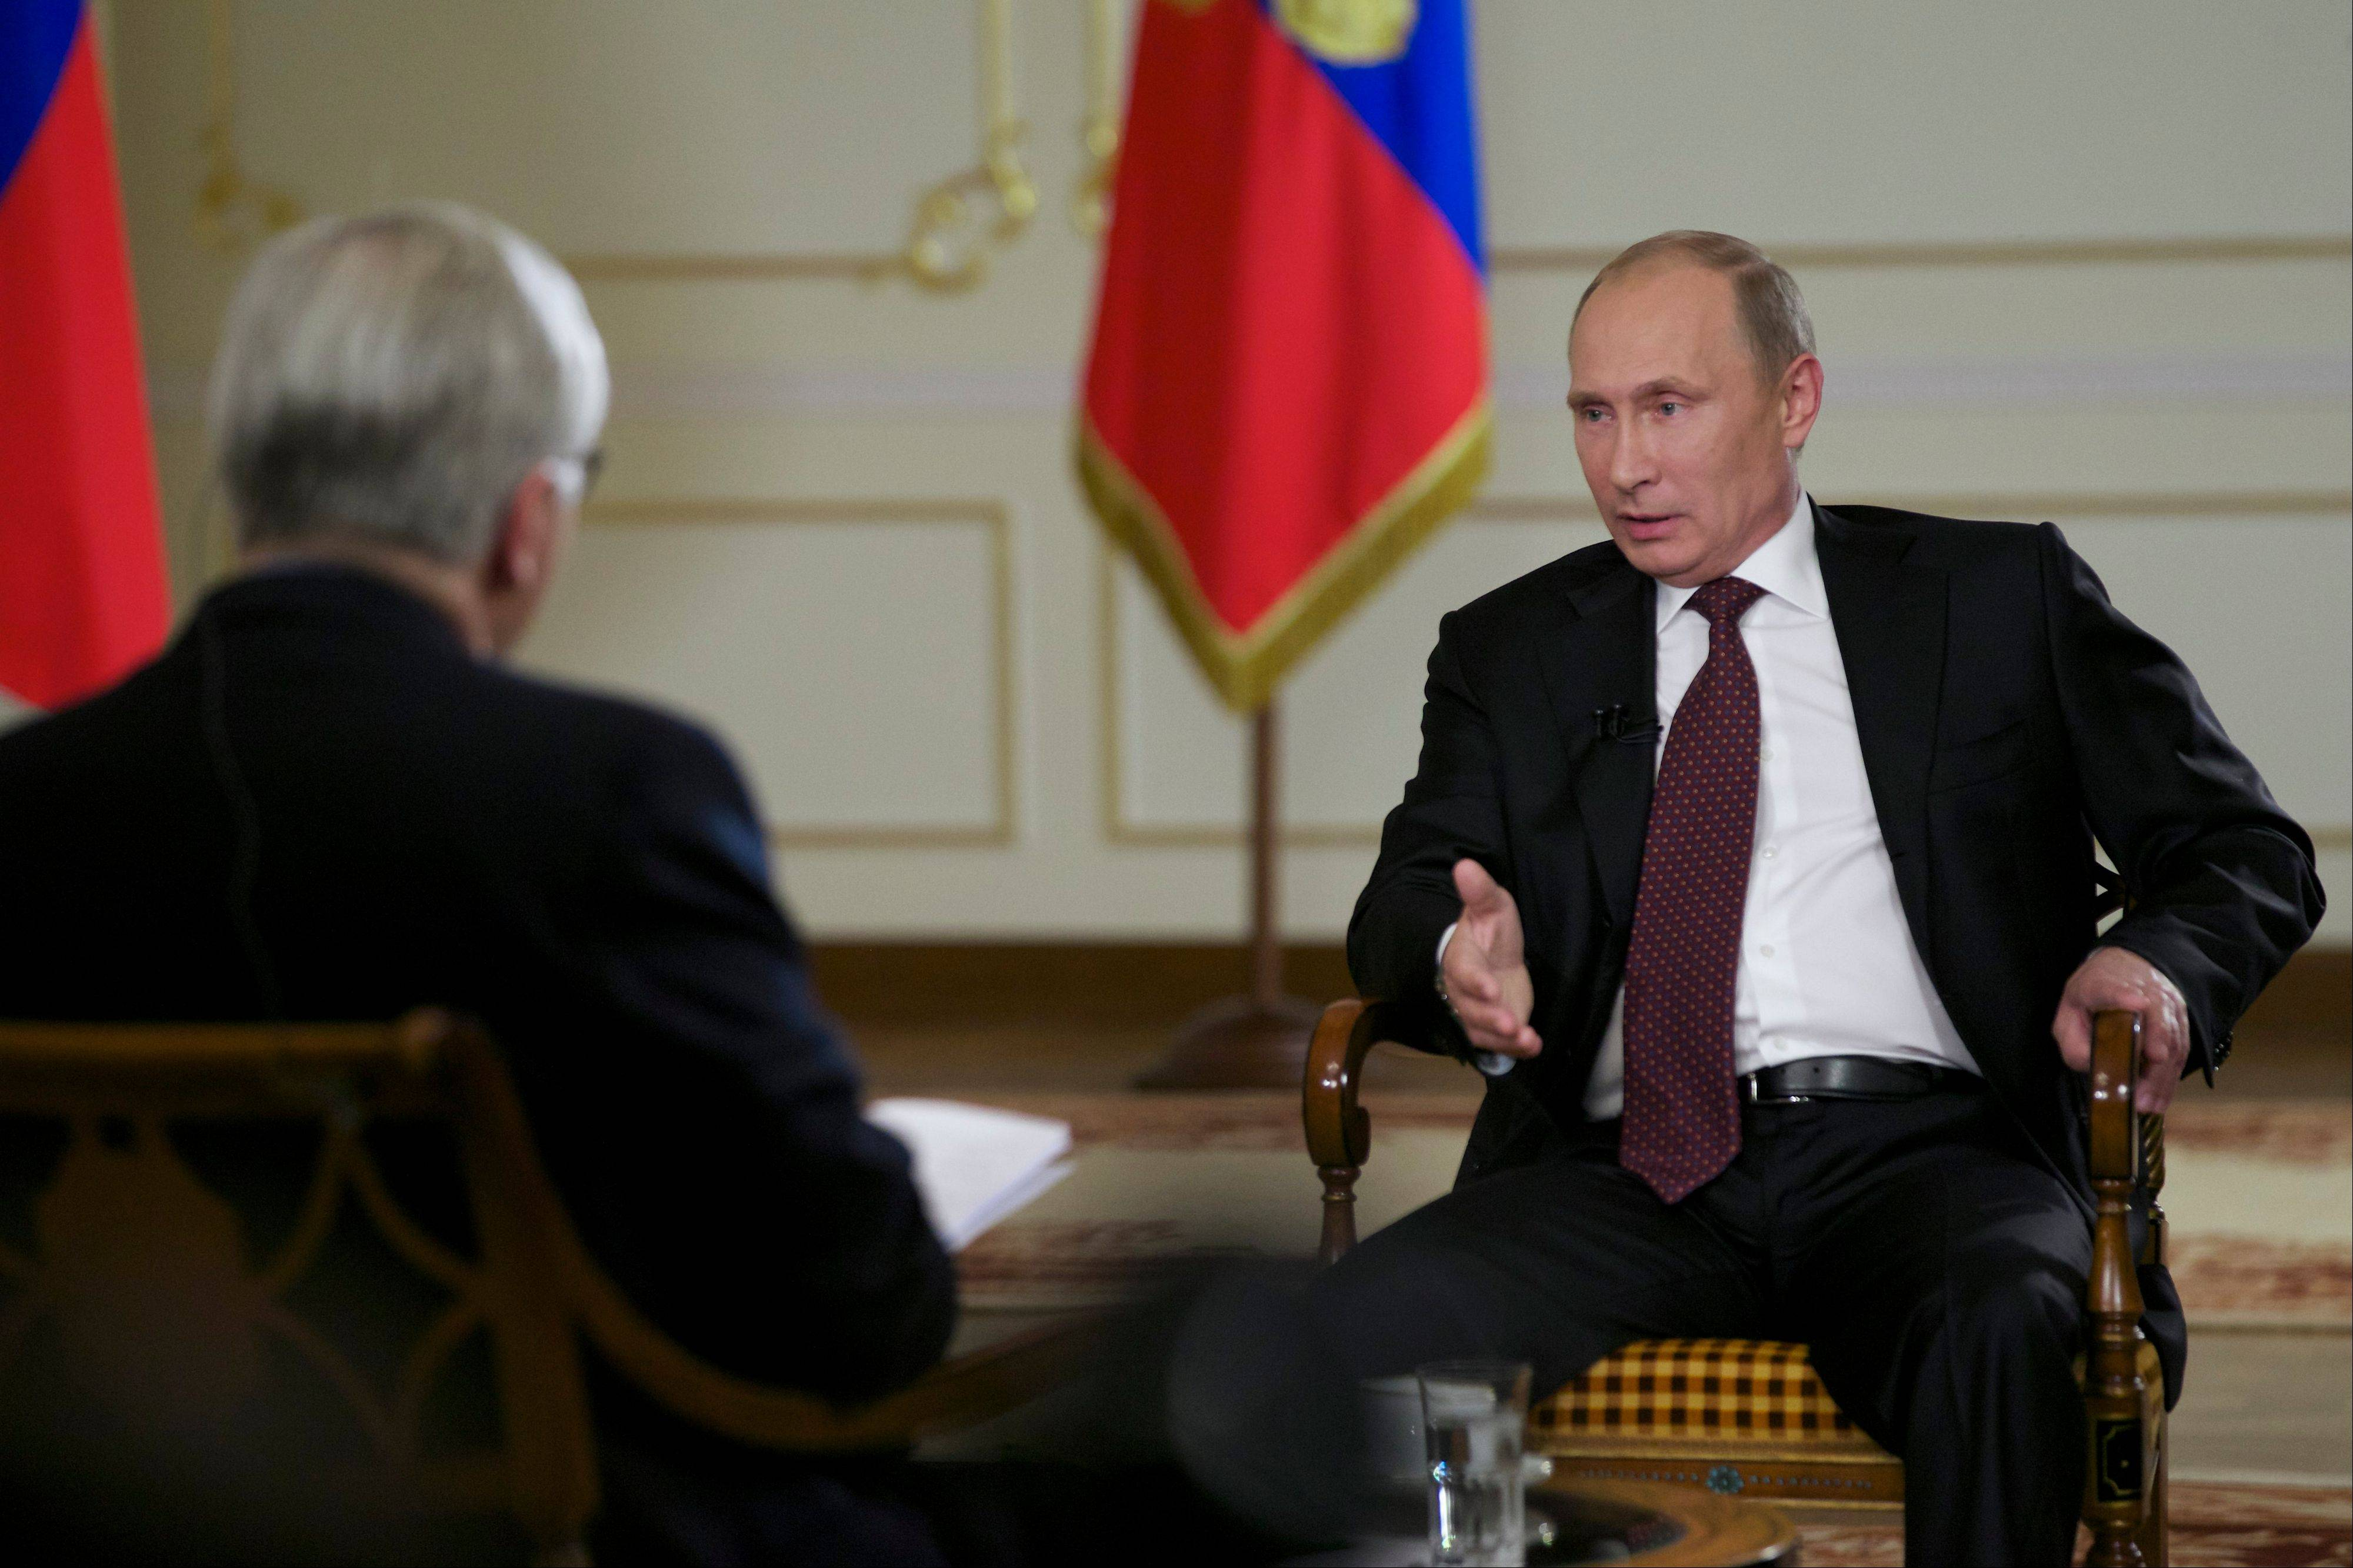 Russian President Vladimir Putin, right, speaks to John Daniszewski, the Associated Press�s Senior Managing Editor for International News, during an AP interview at Putin�s Novo-Ogaryovo residence outside Moscow, Russia, Tuesday, Sept. 3, 2013. Putin sought to downplay the current chill in the U.S.-Russian relations and said that the two countries need to cooperate on a range of issues in the interests of global stability.